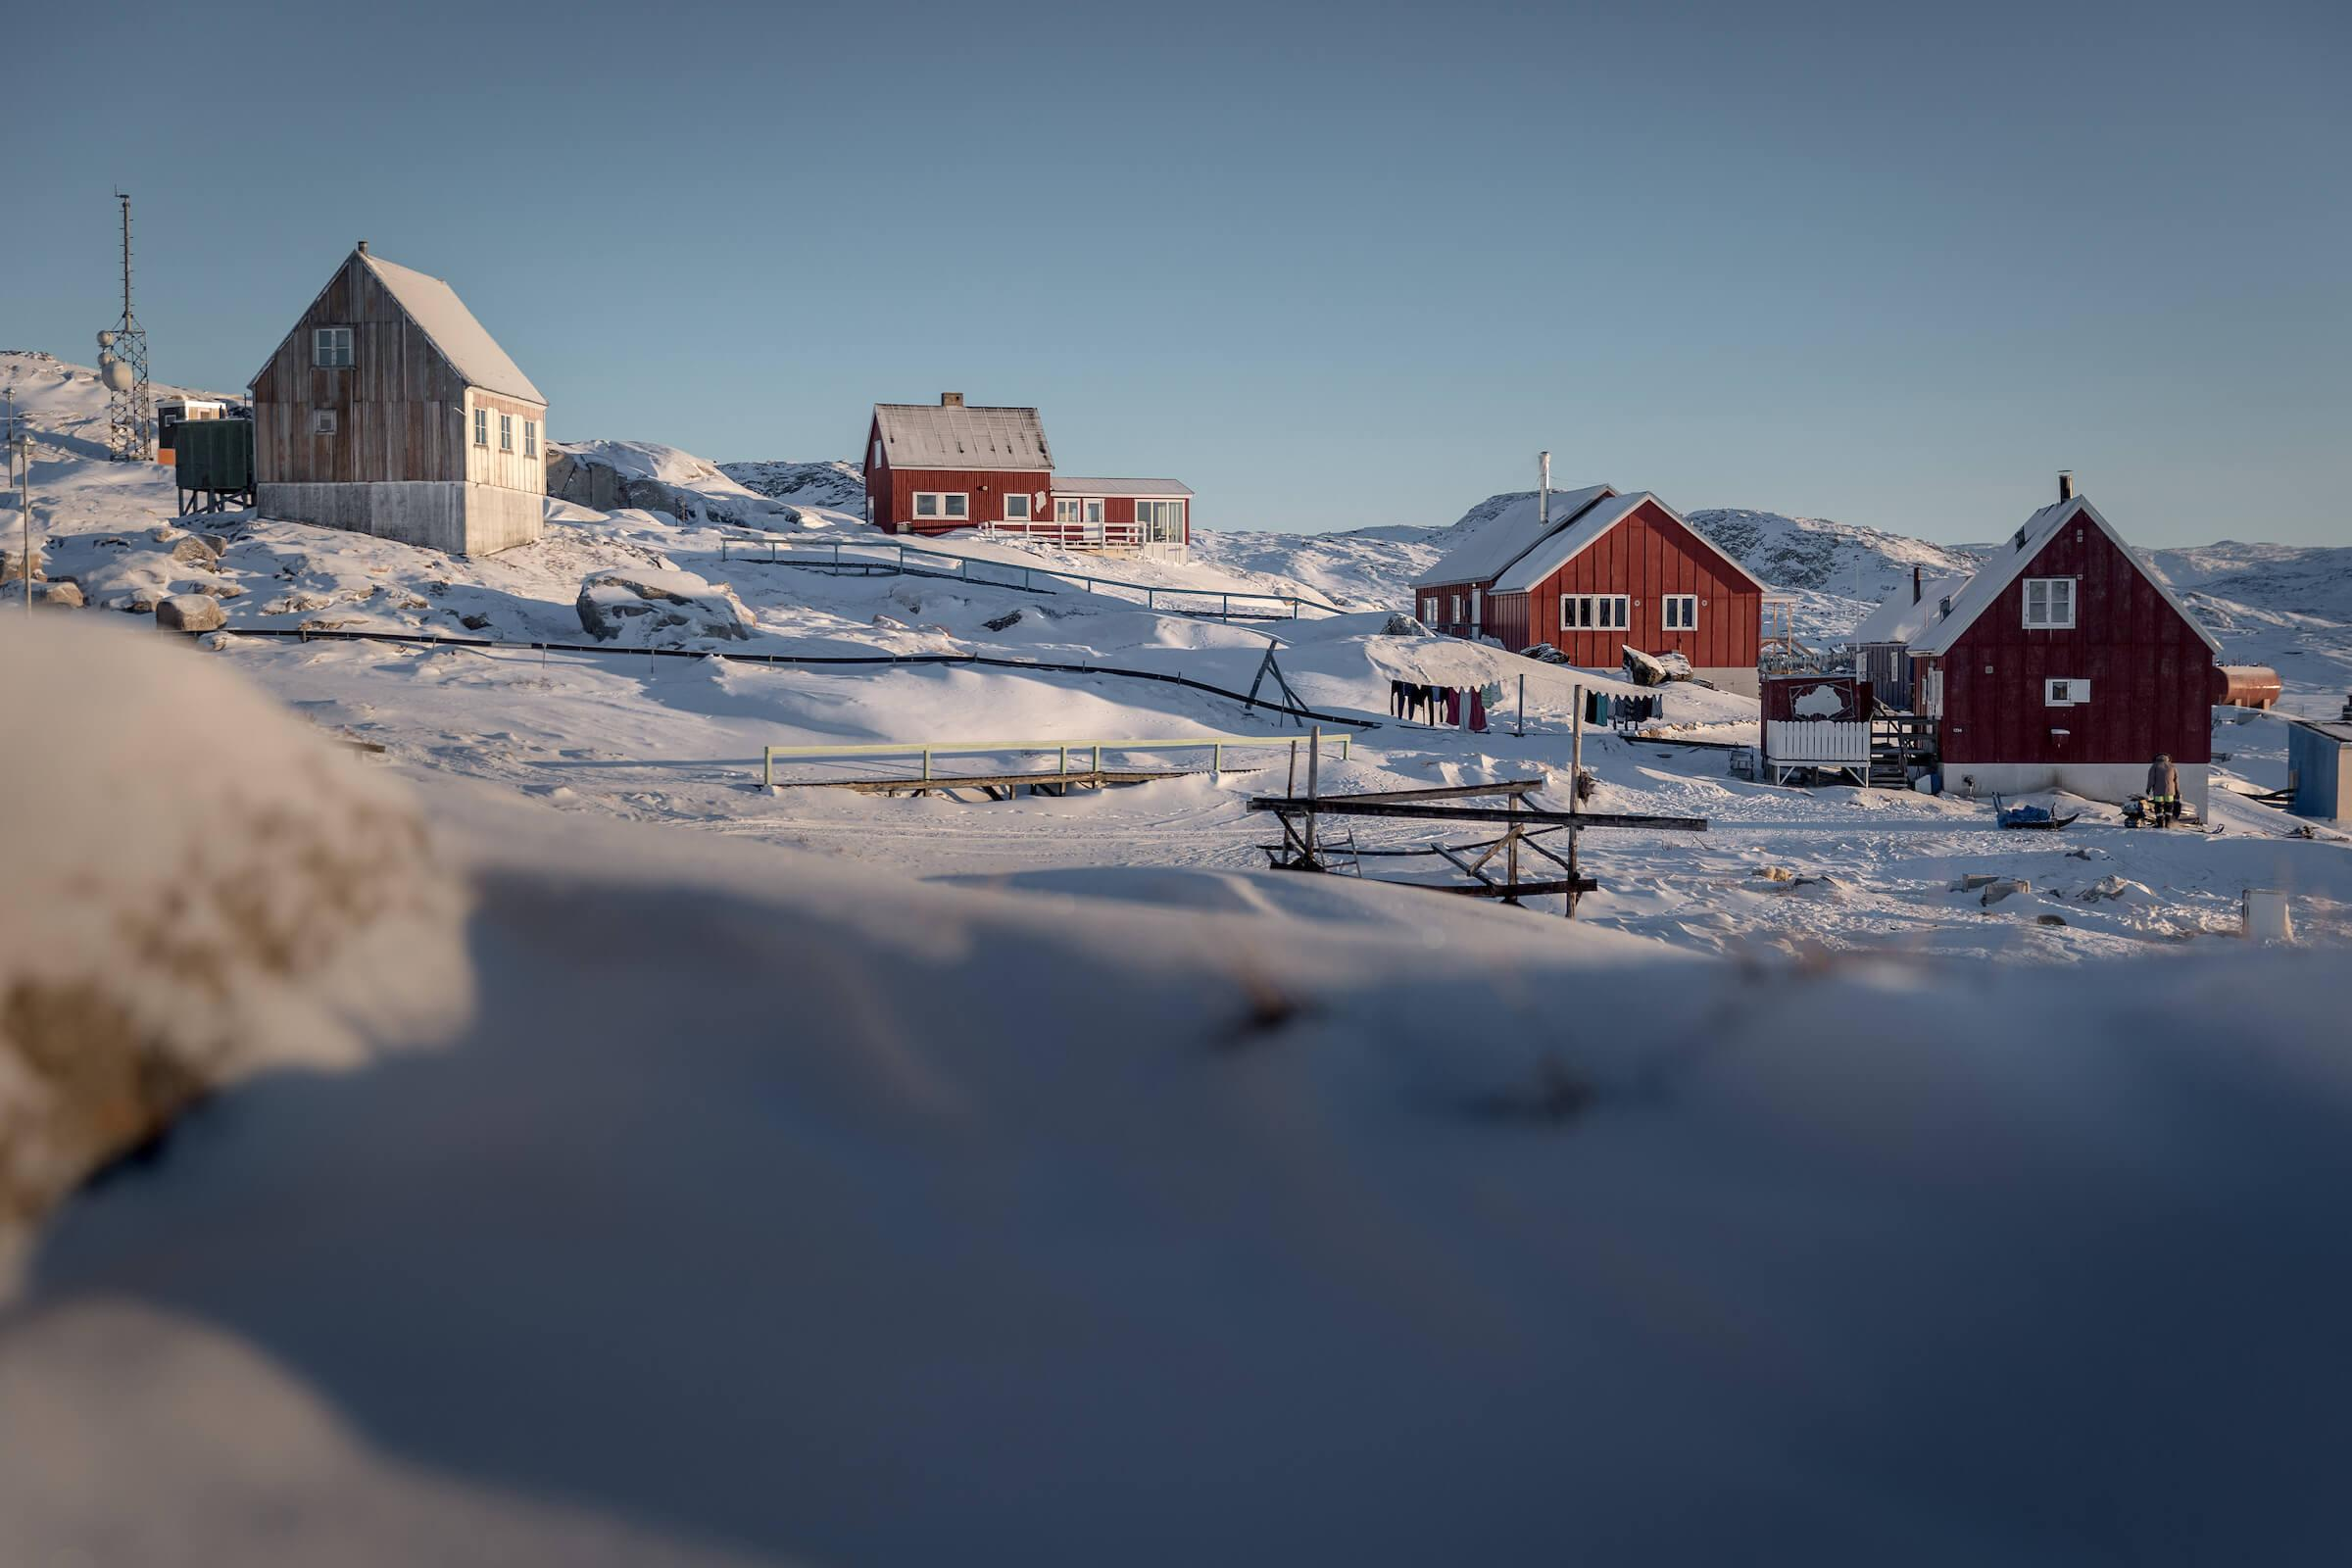 Hotel Nordlys in the village Oqaatsut in Greenland